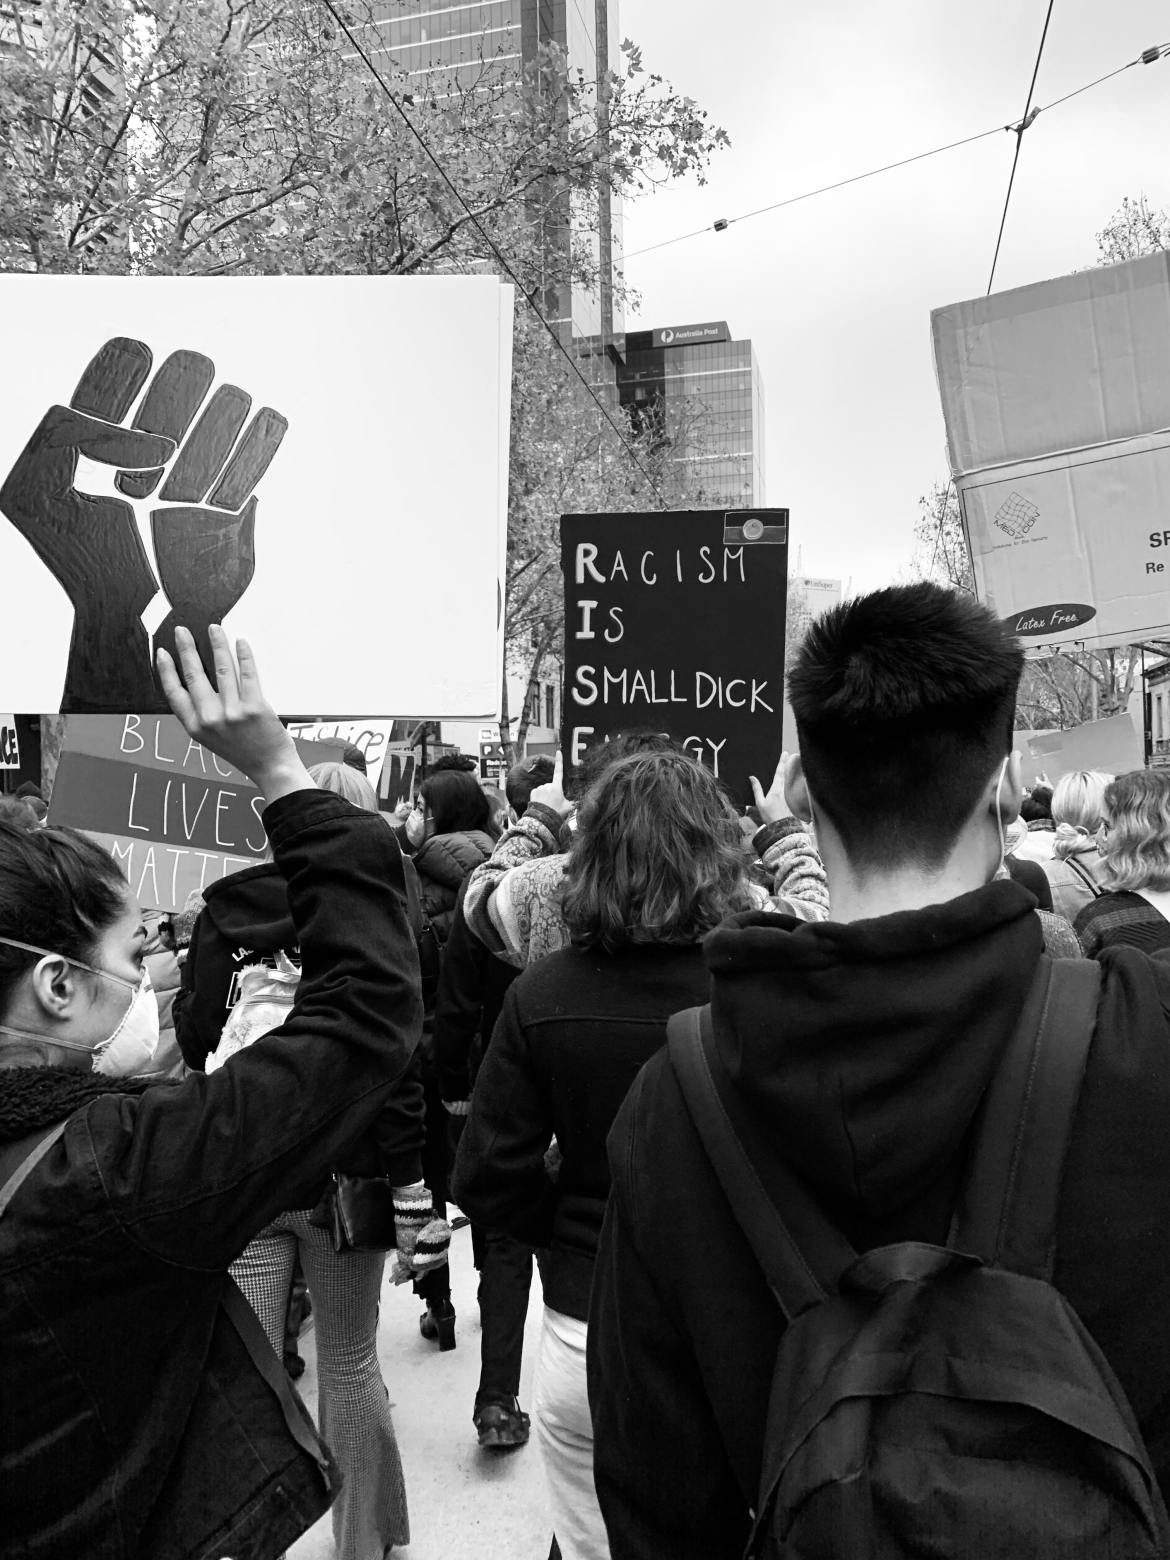 How to Support Black Lives Matter Effectively